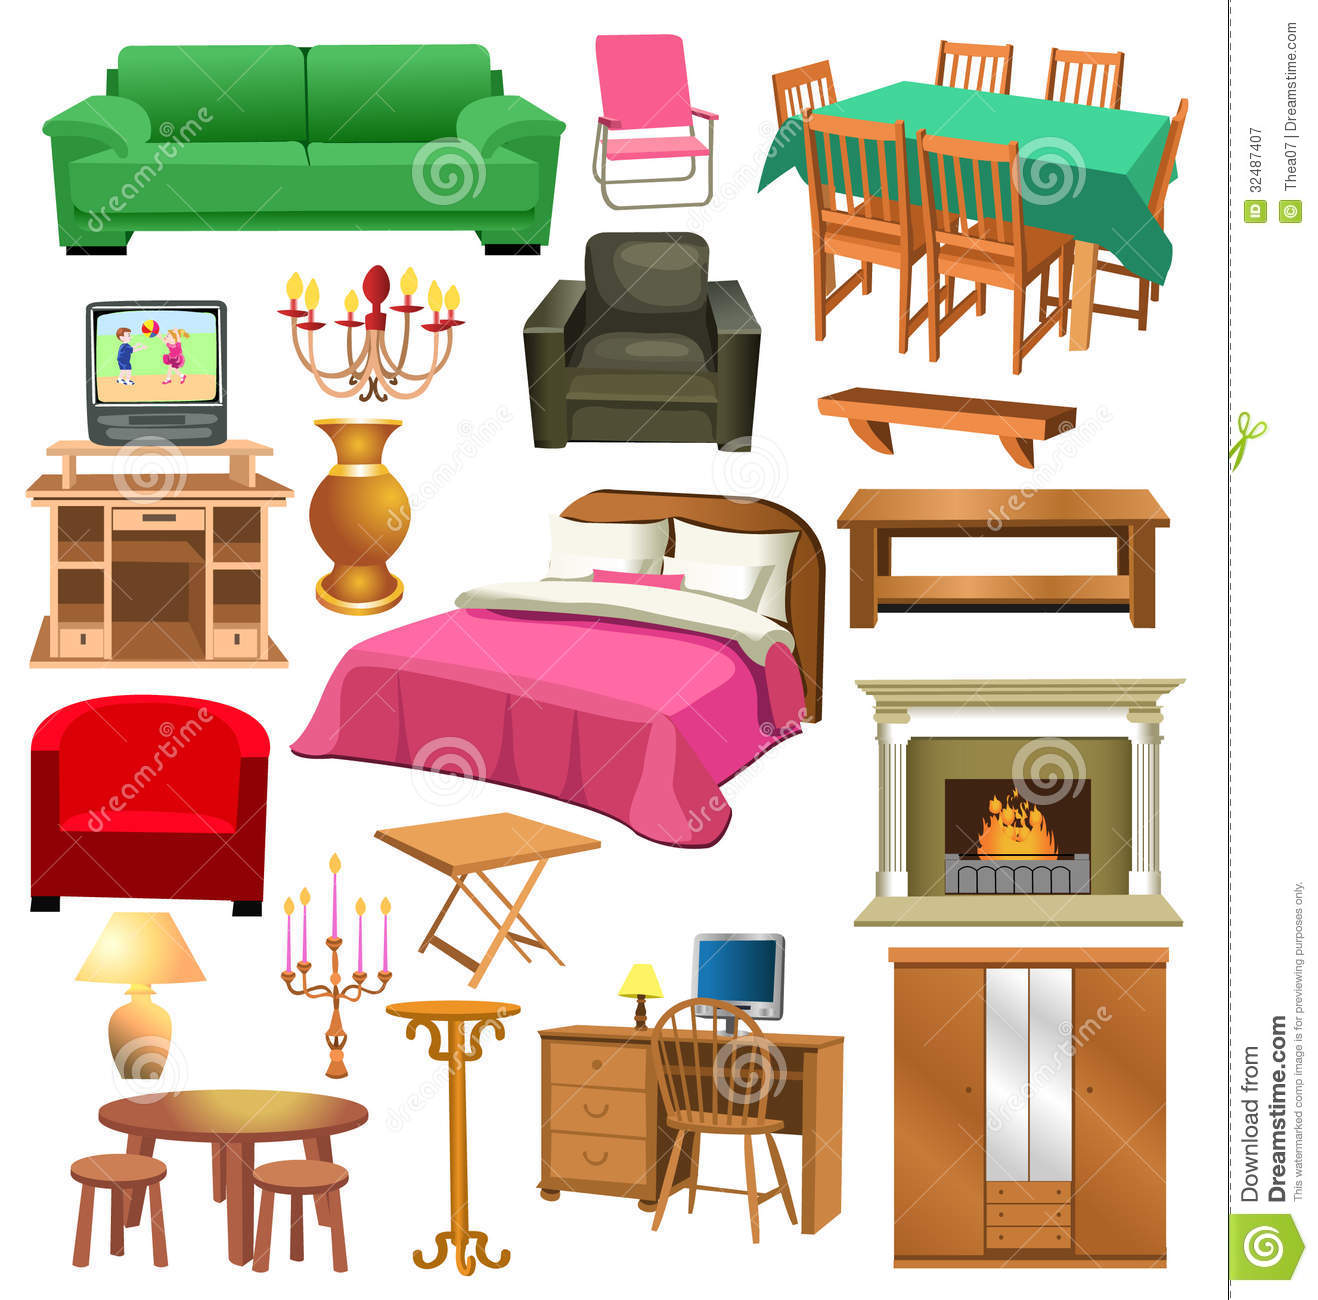 Cartoon Kitchen Furniture: Living Room Furniture Royalty Free Stock Photography